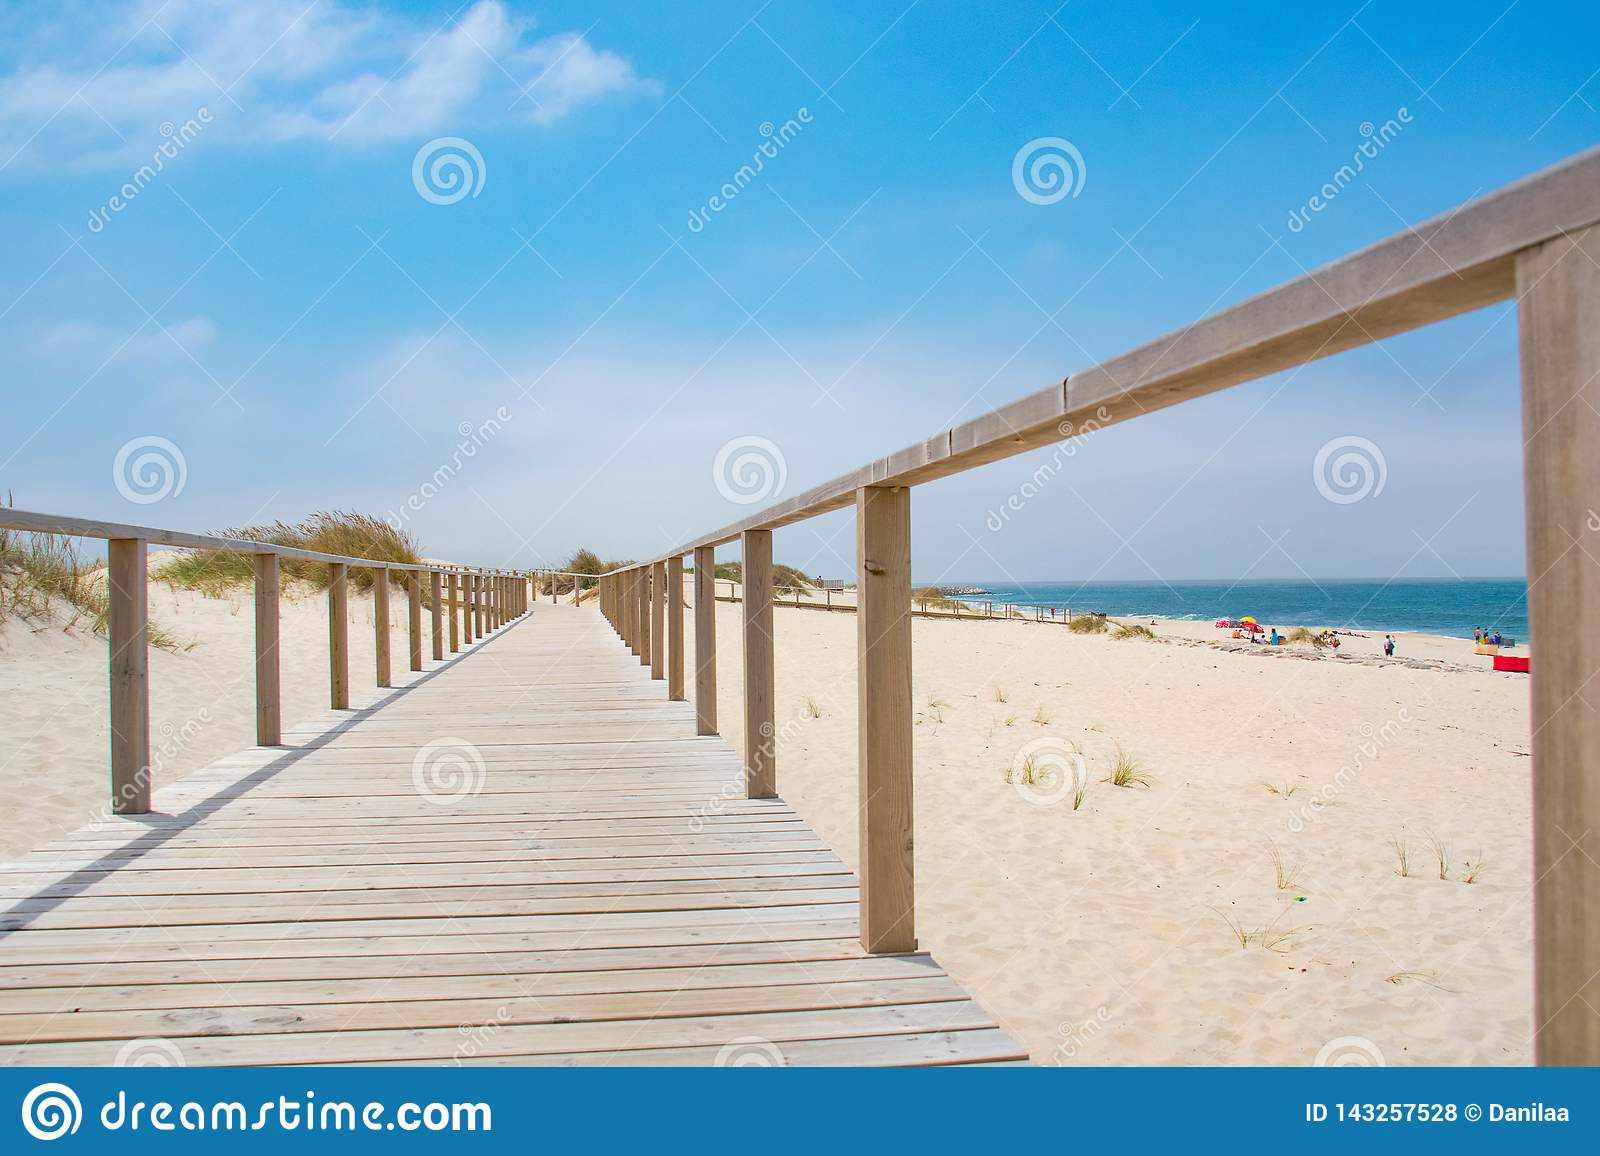 Wooden path with Atlantic Ocean view